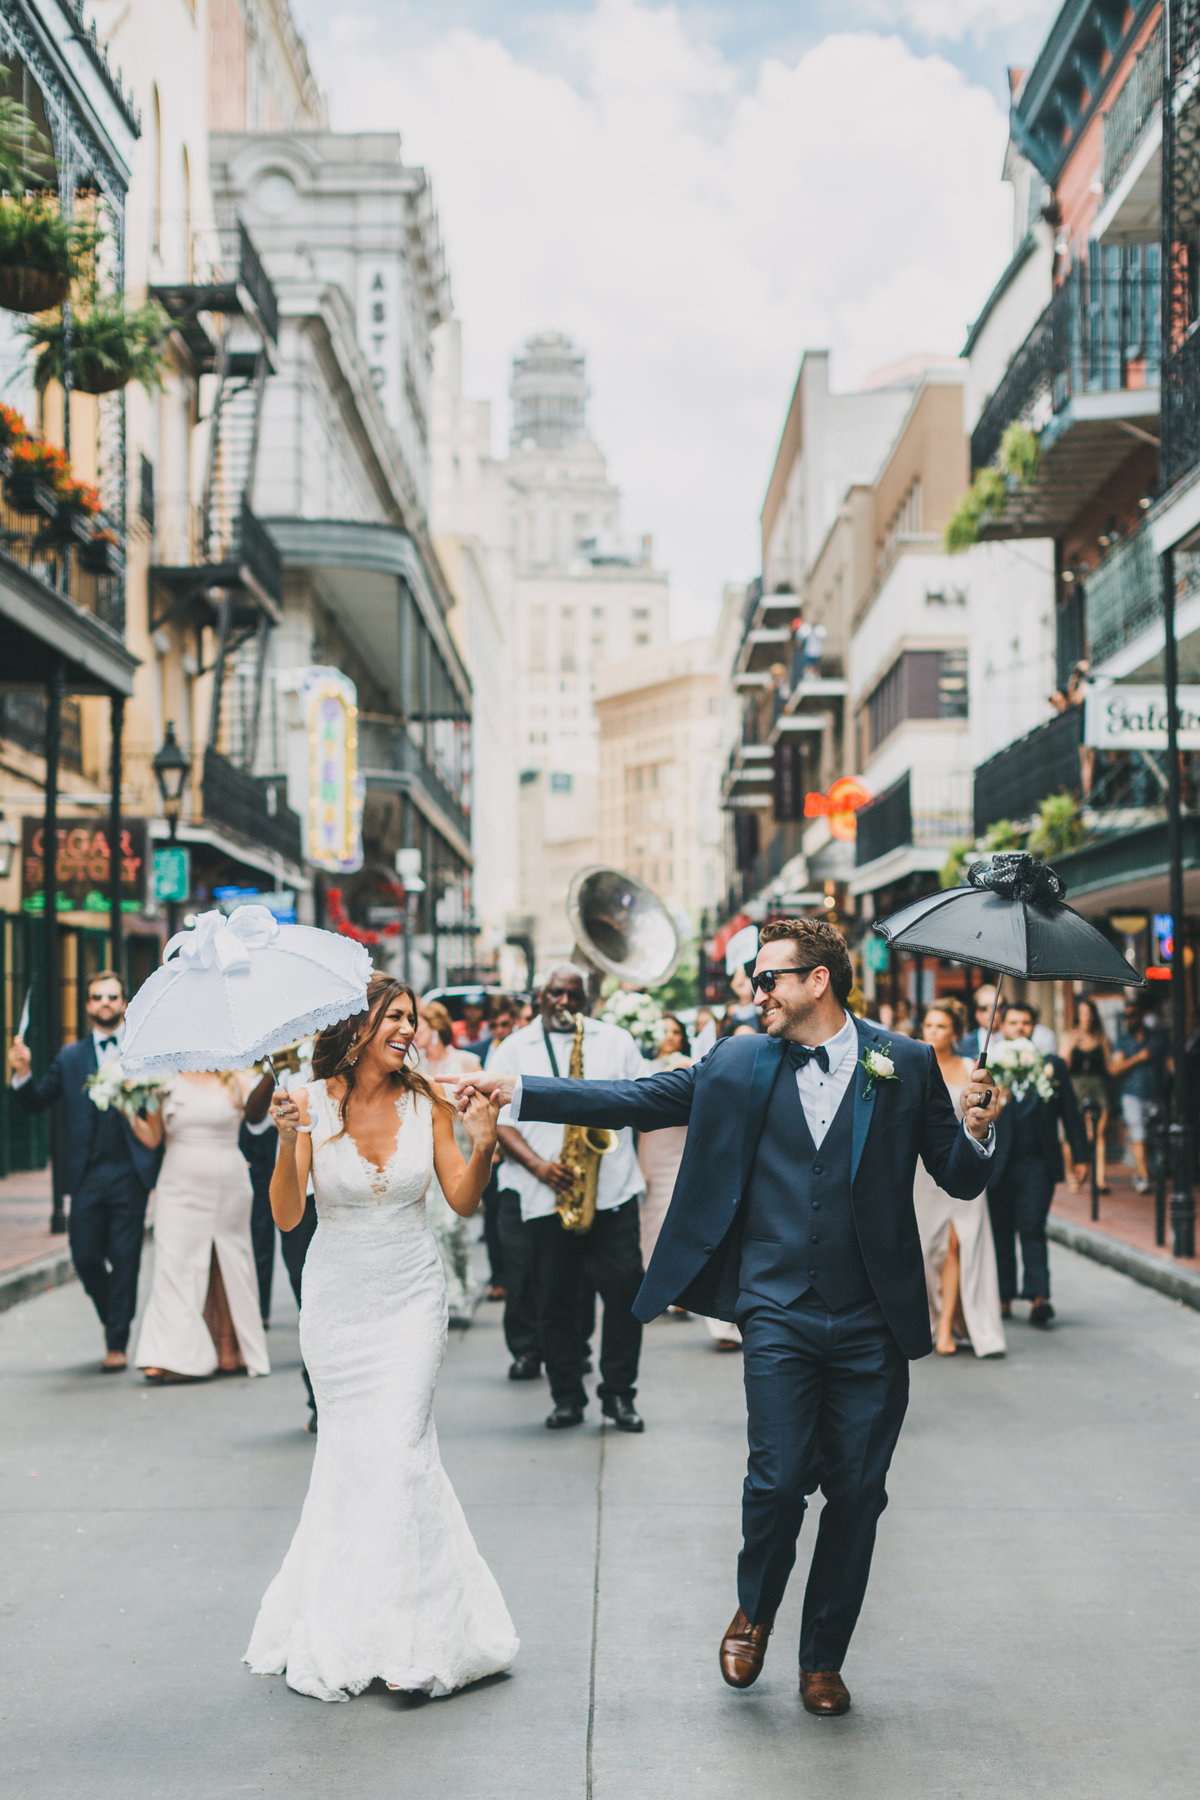 GuzzardoWedding_TrolleySecondLine-81